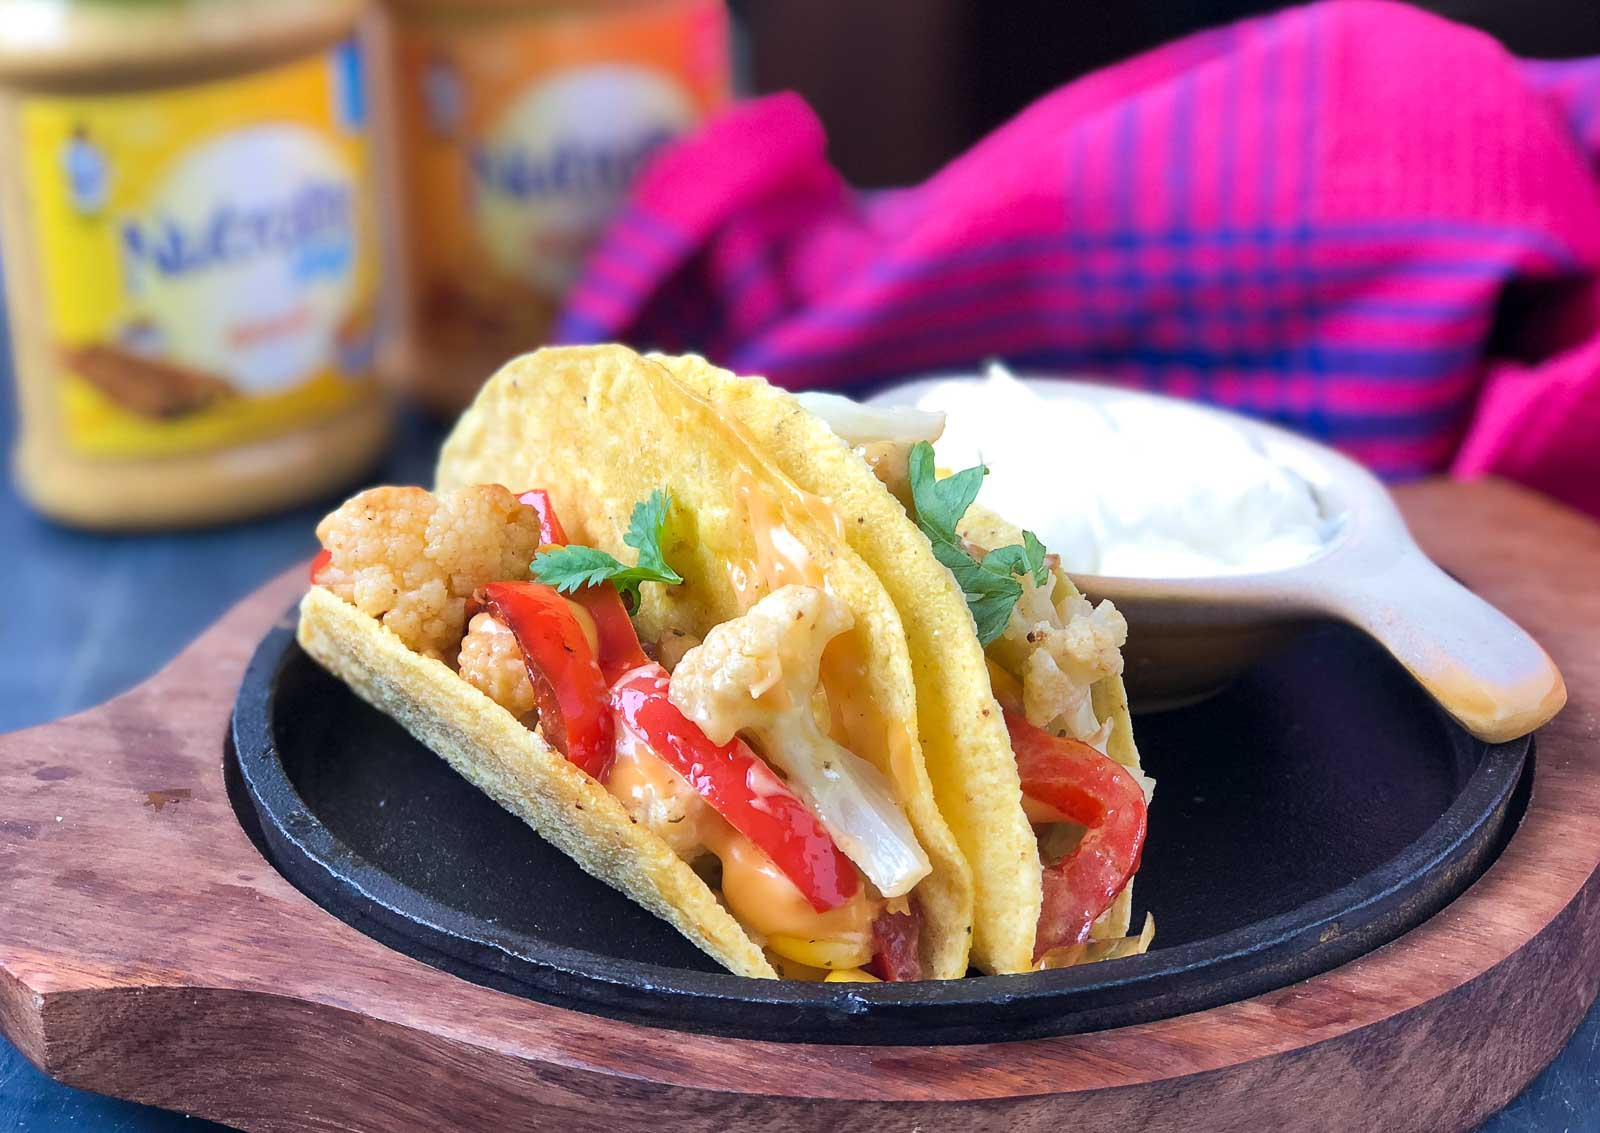 Indo Mexican Roasted Vegetable Taco Recipe With Creamy Mayo